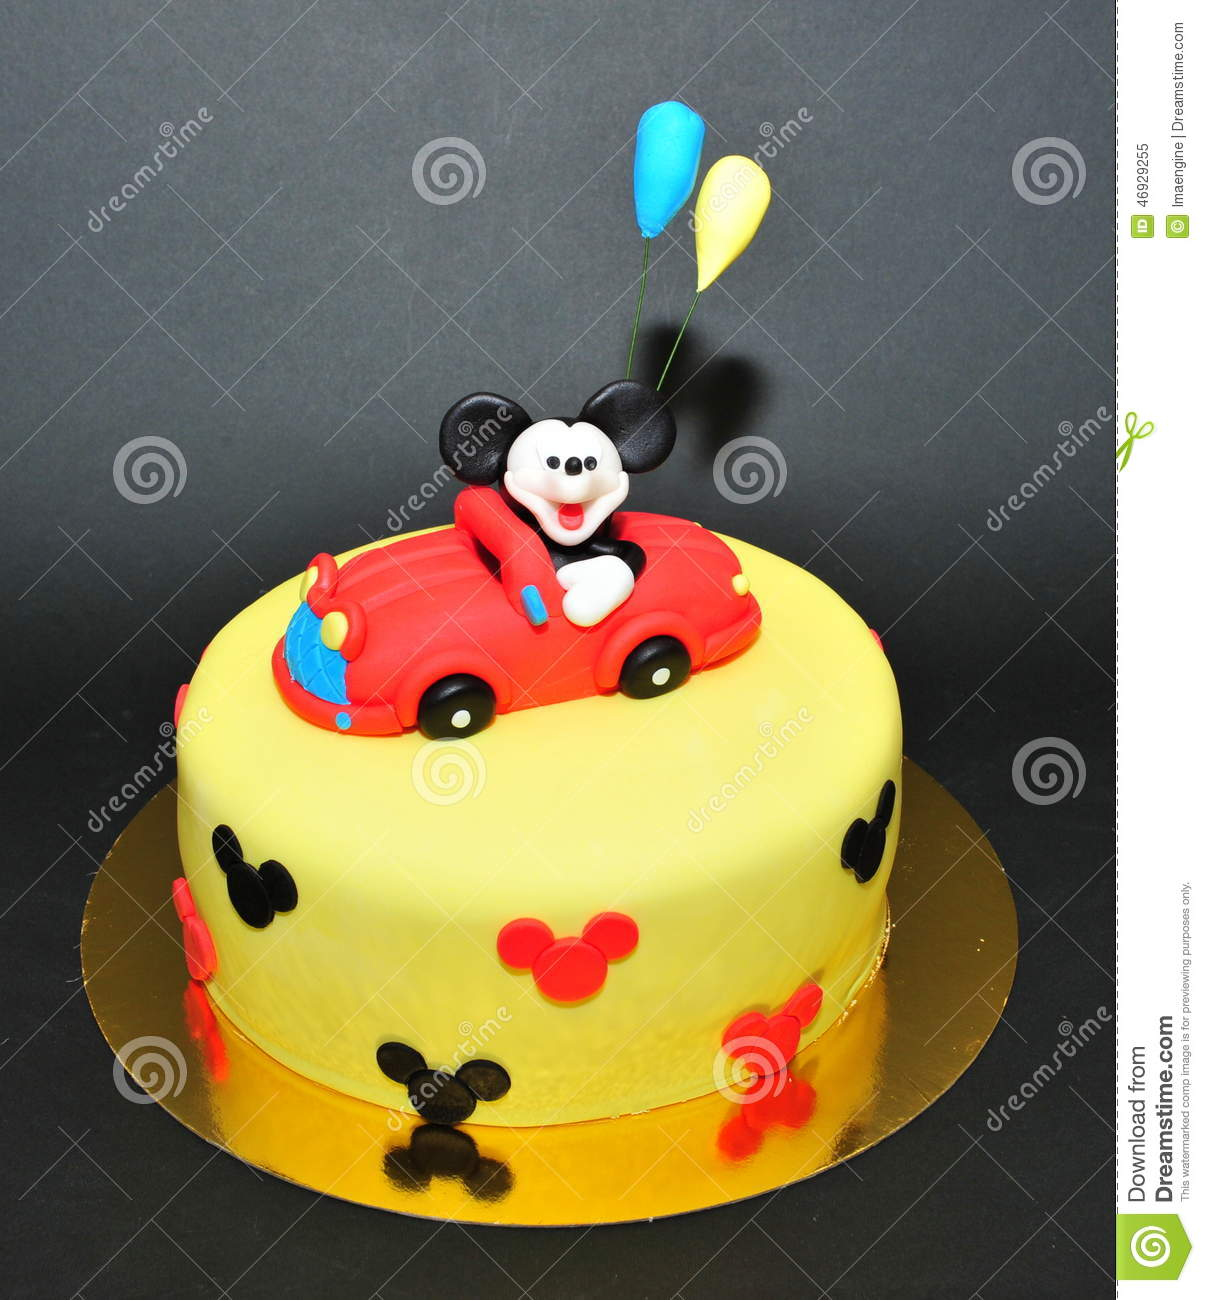 Mickey Mouse Fondant Cake Editorial Image Image Of